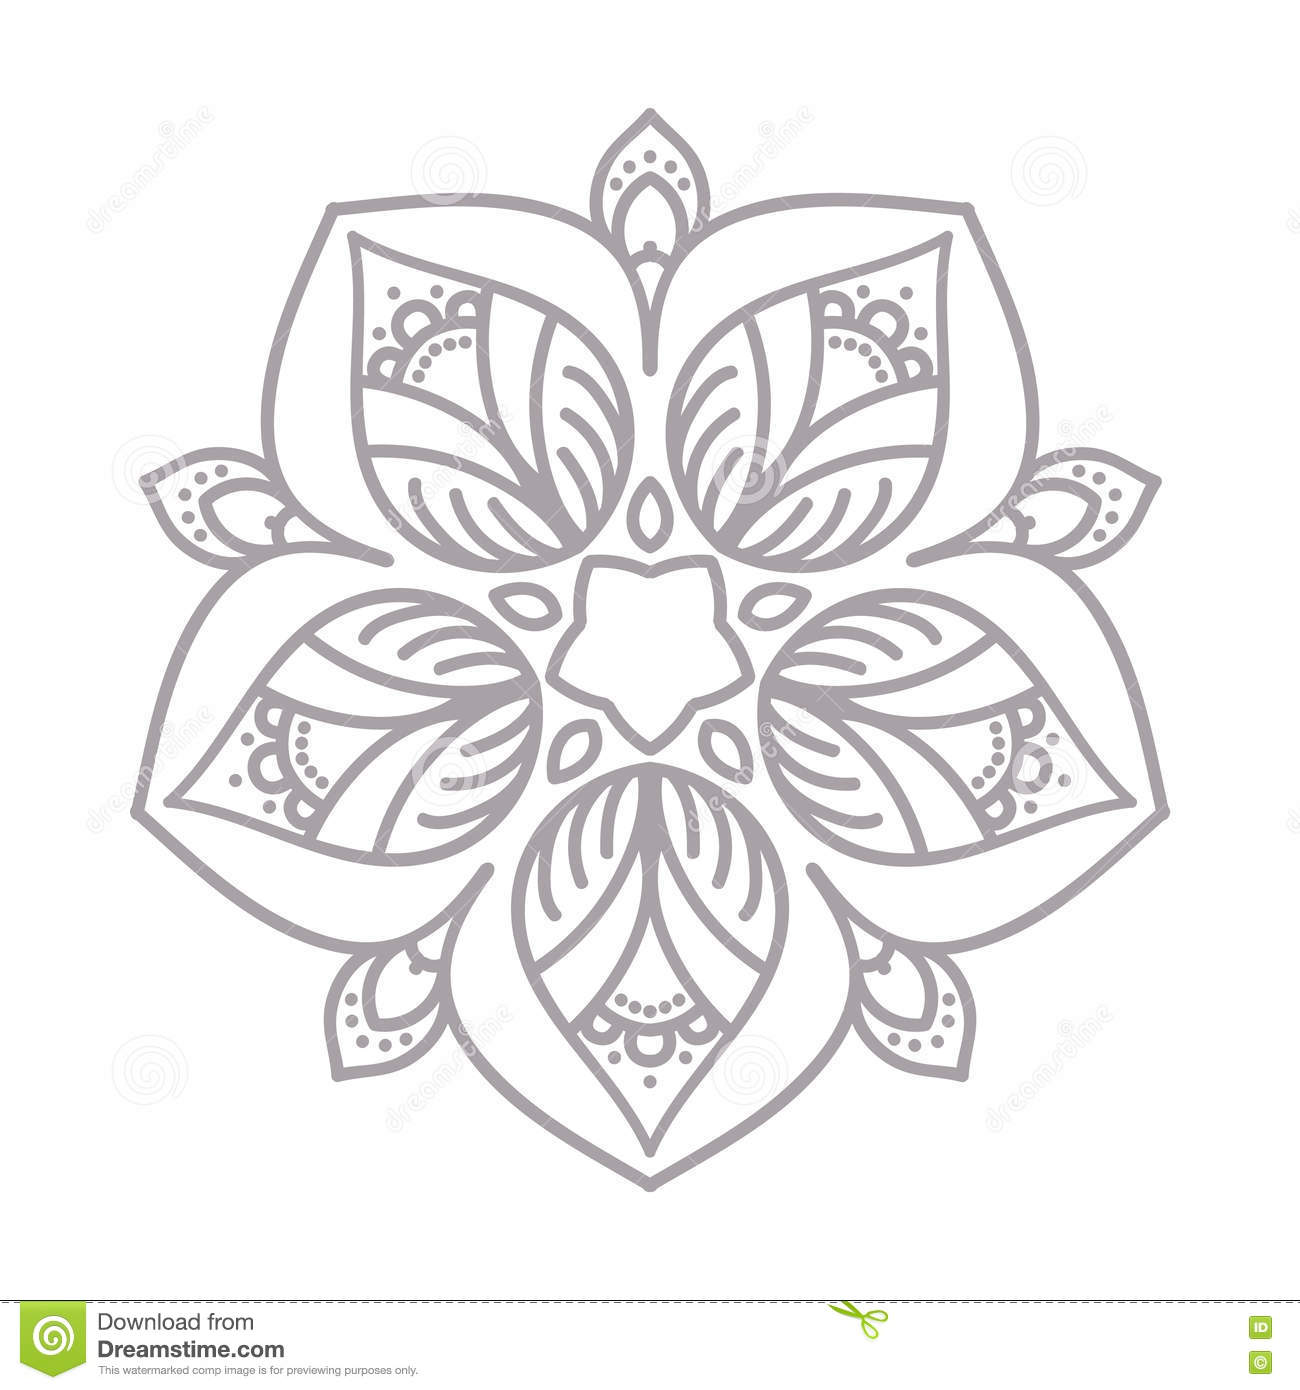 vector floral icon and design element in outline style